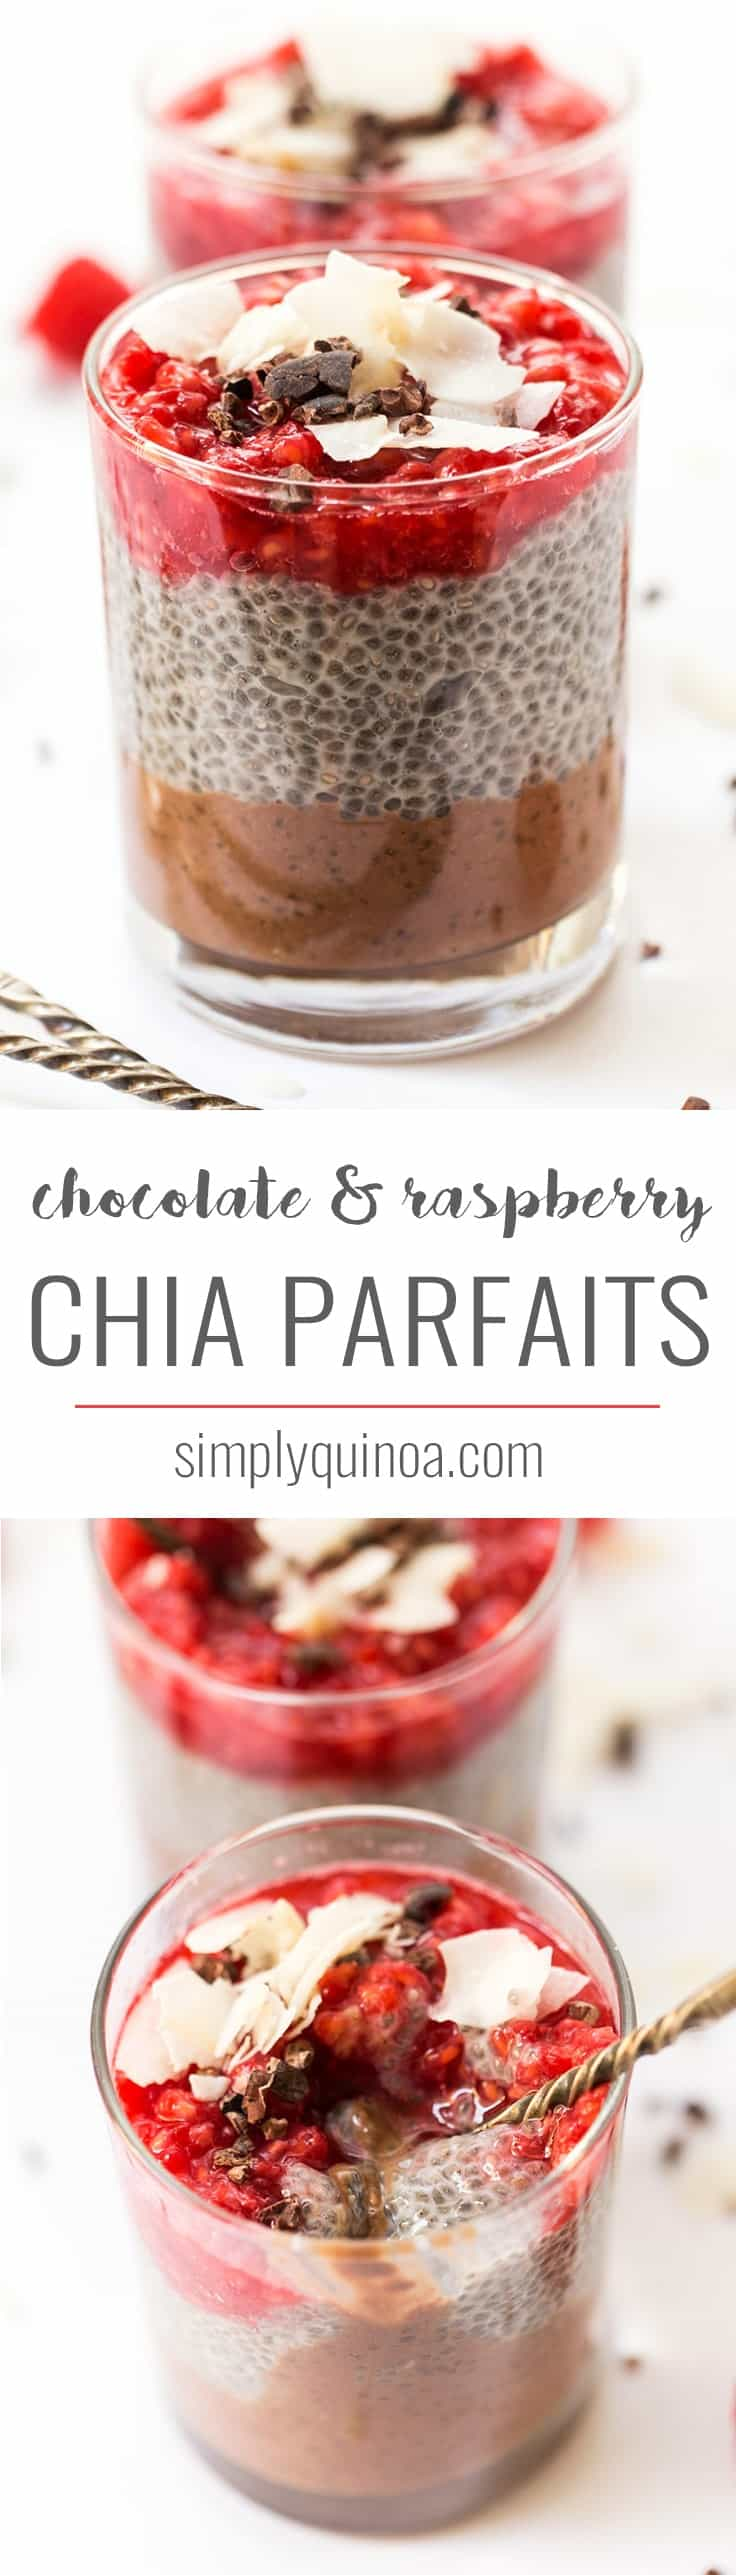 These HEALTHY chia parfaits start with a layer of banana chocolate mousse, then a layer of chia pudding and finished off with smashed raspberries on top!